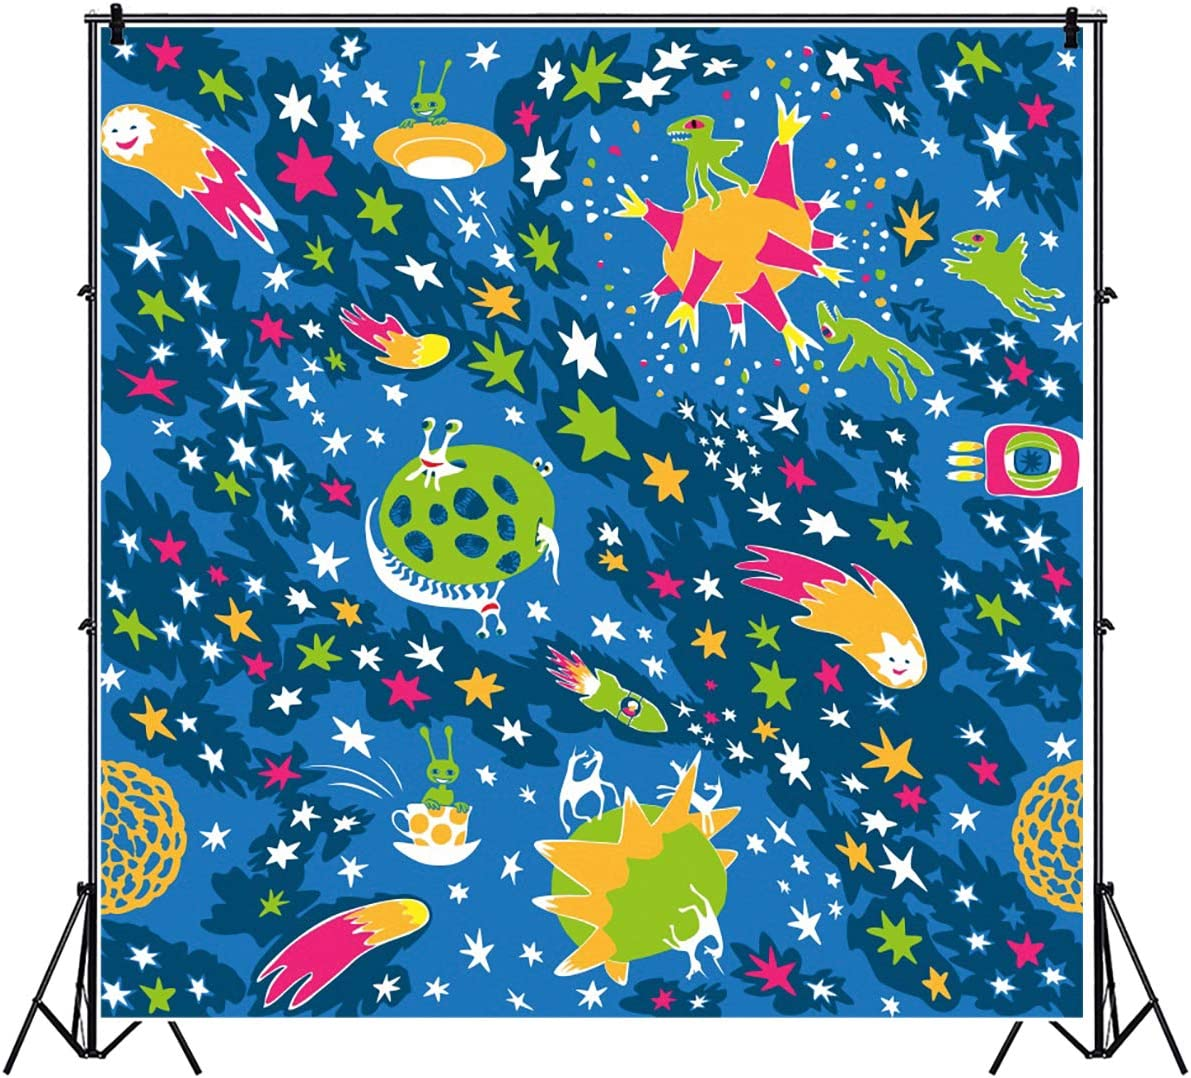 YEELE 6.5x6.5ft Funny Dark Space Pattern Photography Backdrop Kids Birthday Party Background Space Ship Theme Baby Shower Room Decoration Baby Toddler Boys Artistic Portrait Photo Booth Props